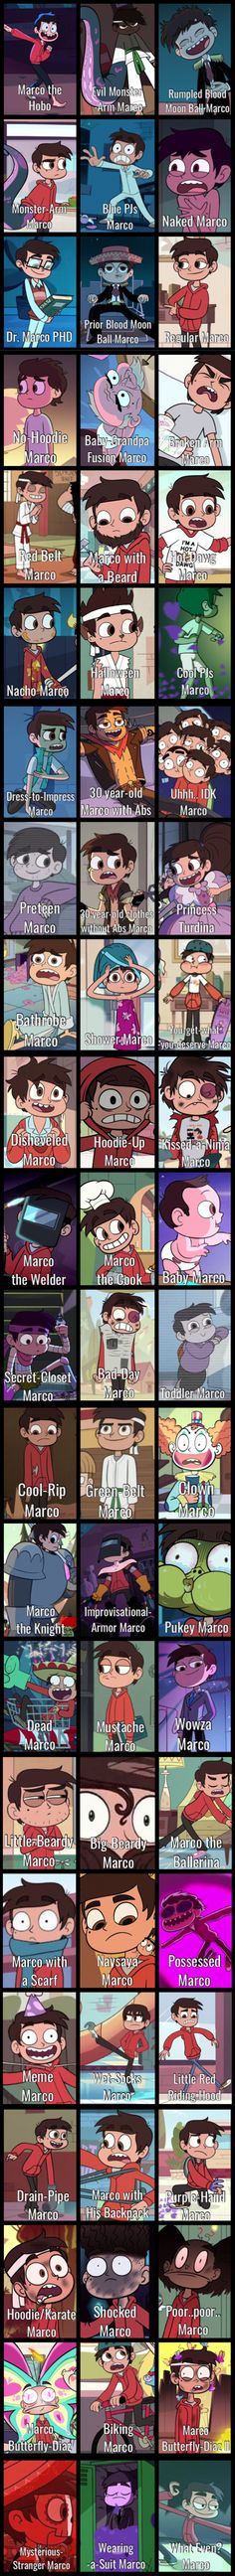 ALL OF THE MARCOS Star vs the Forces of Evil-- 30 year old Marco is my favorite, by far. He's so badass